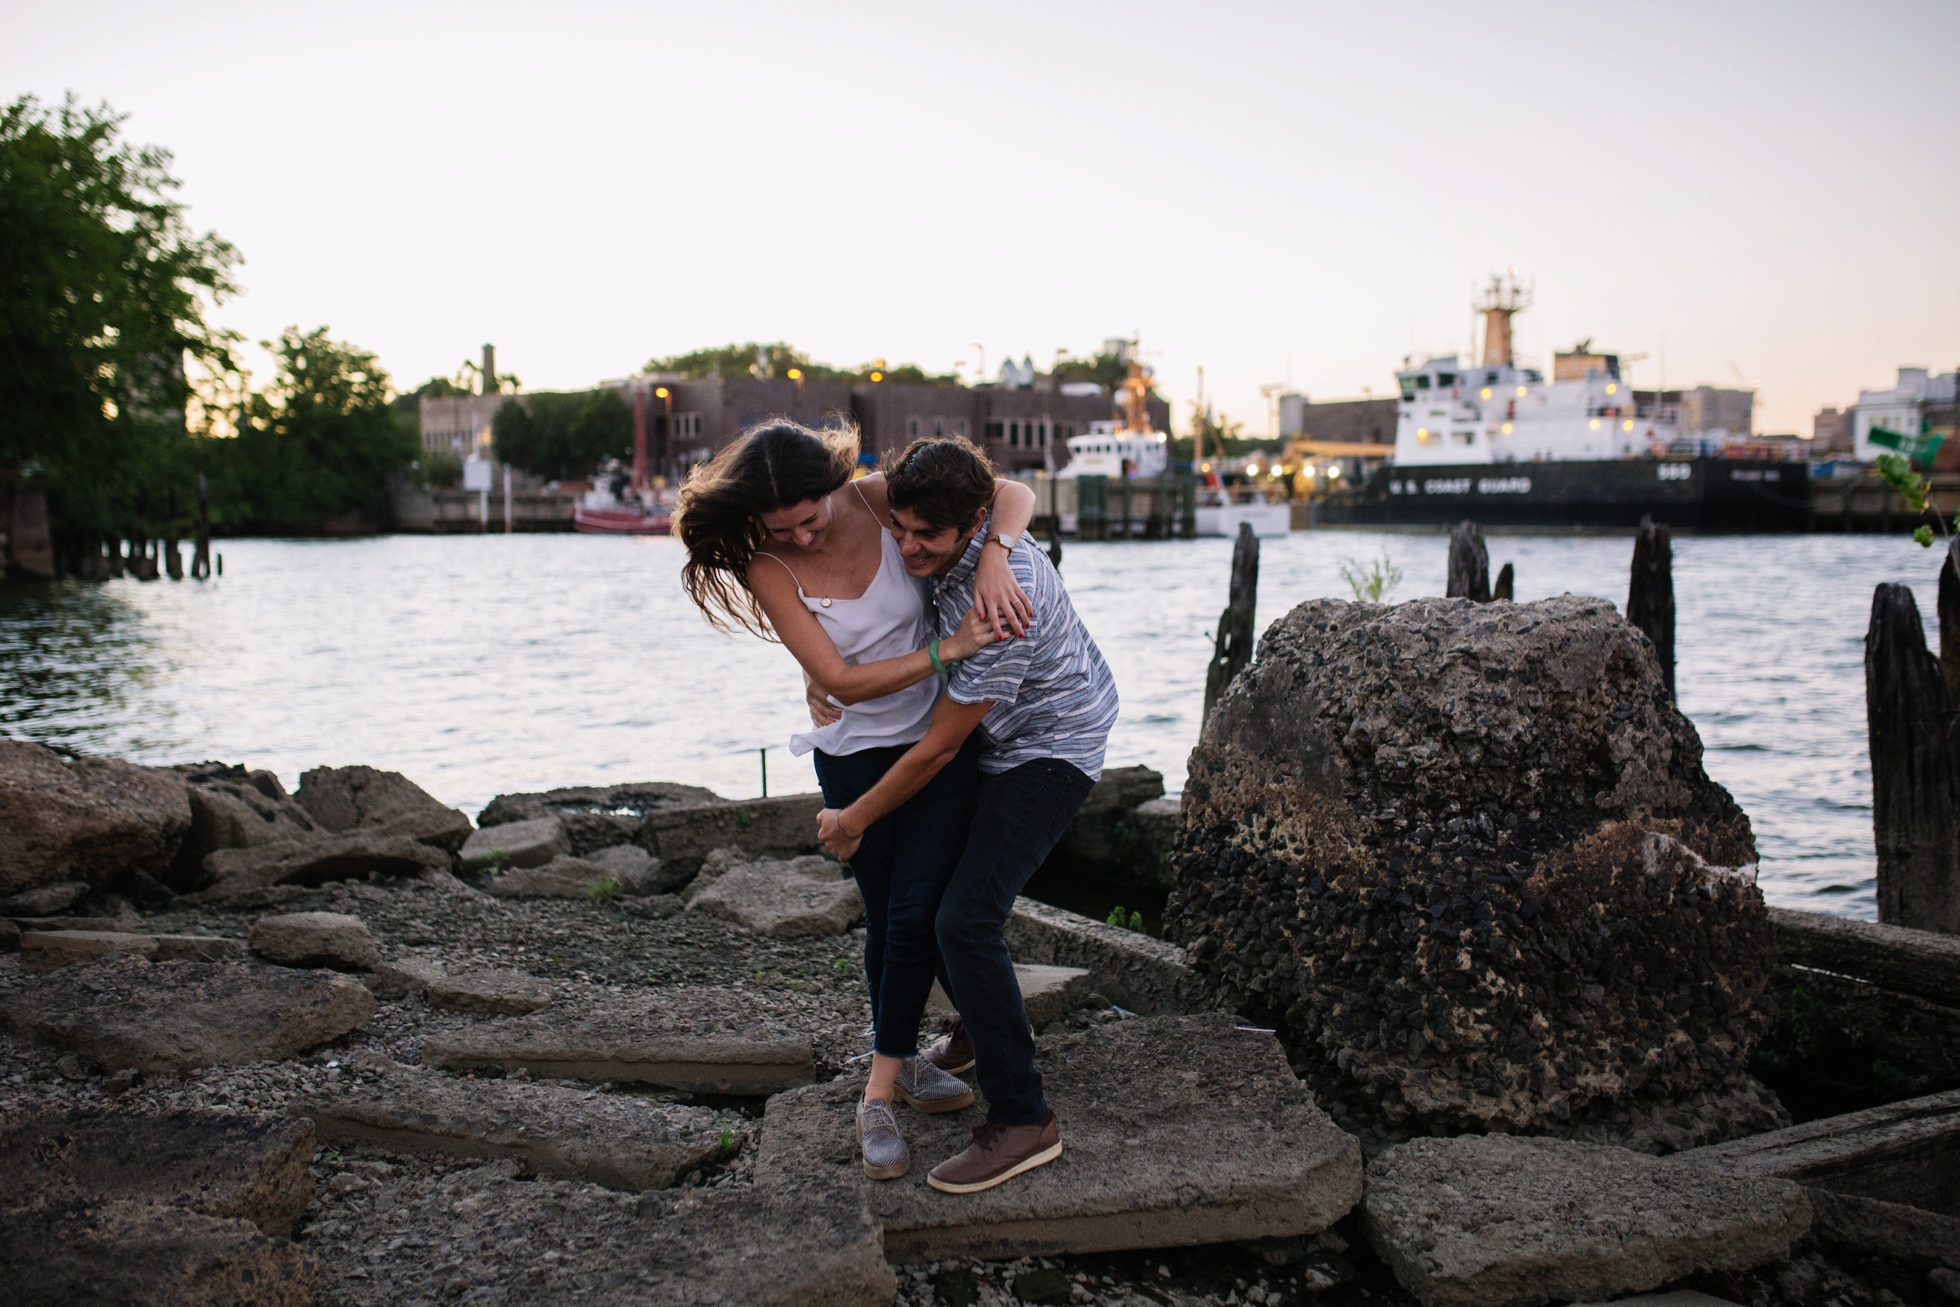 south-philly-sunset-engagement-photos-neon-0023